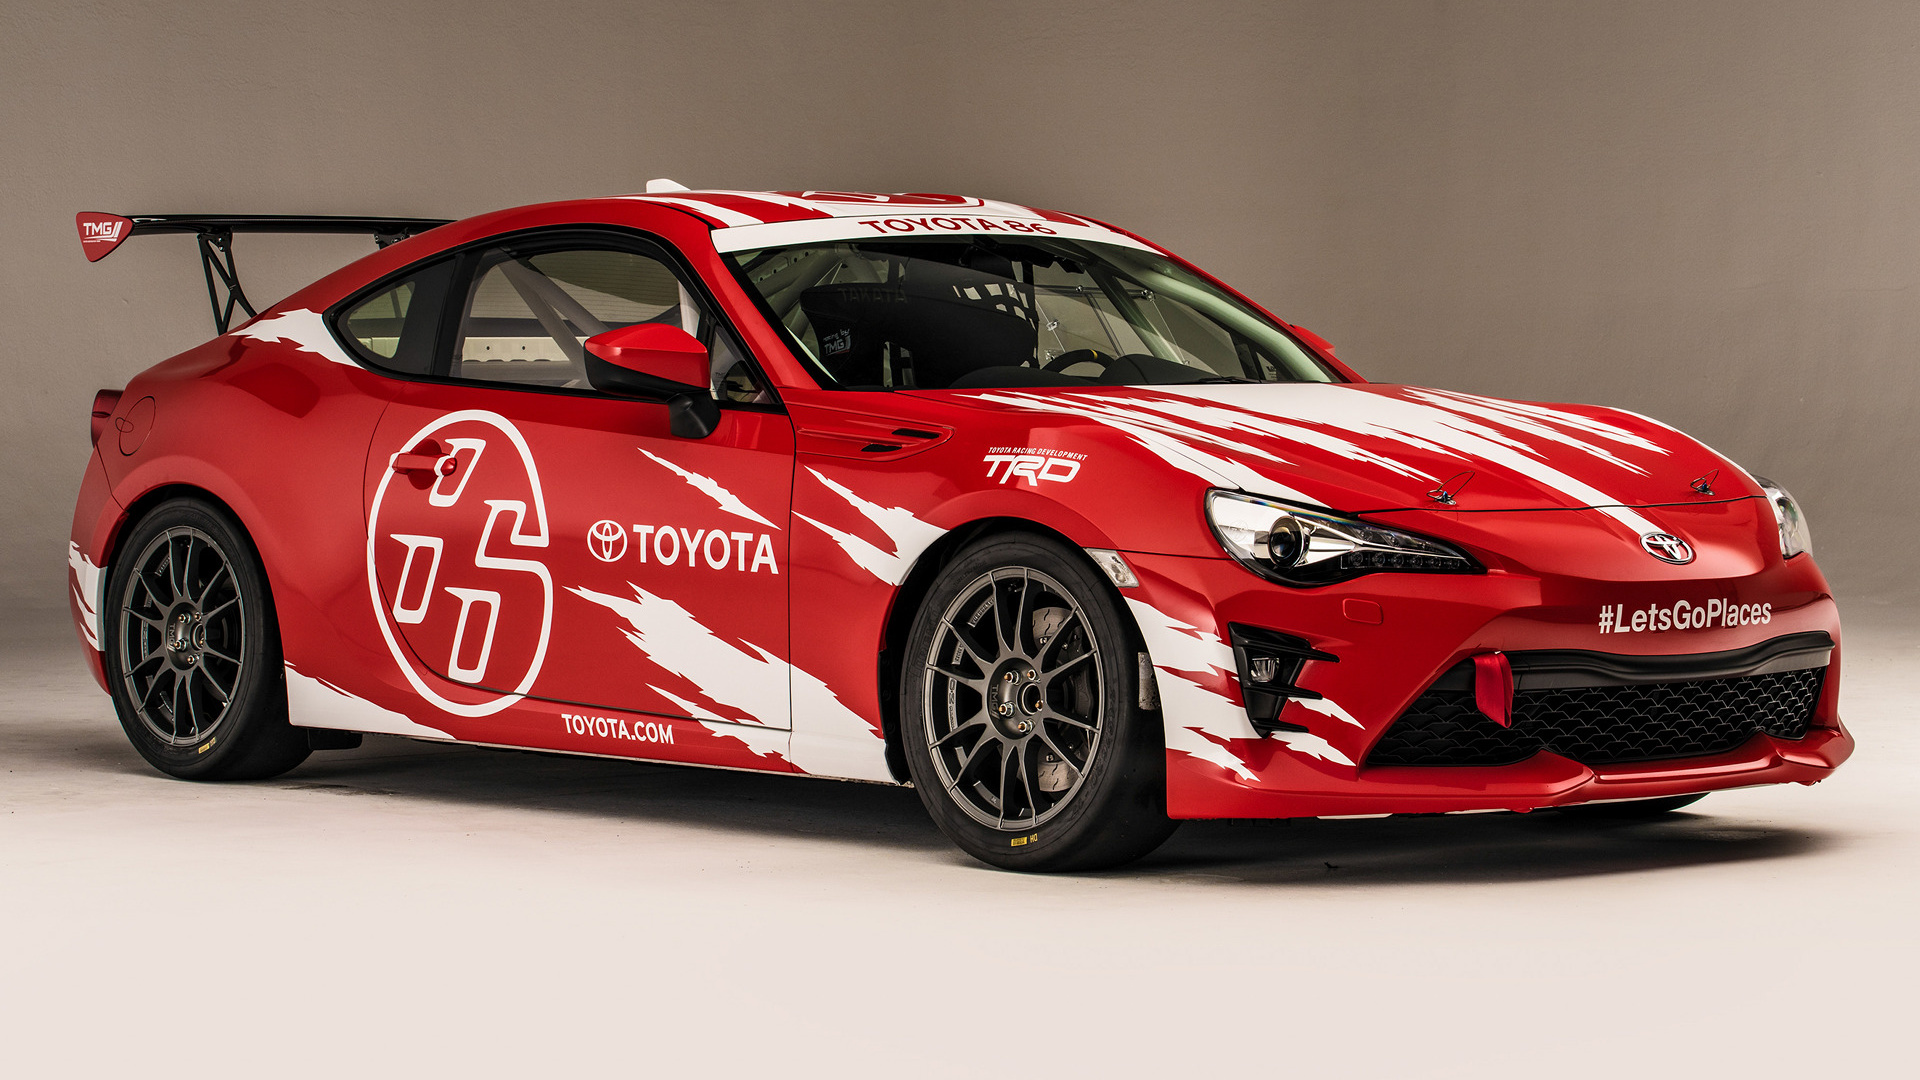 Toyota GT86 CS (2016) Wallpapers and HD Images - Car Pixel